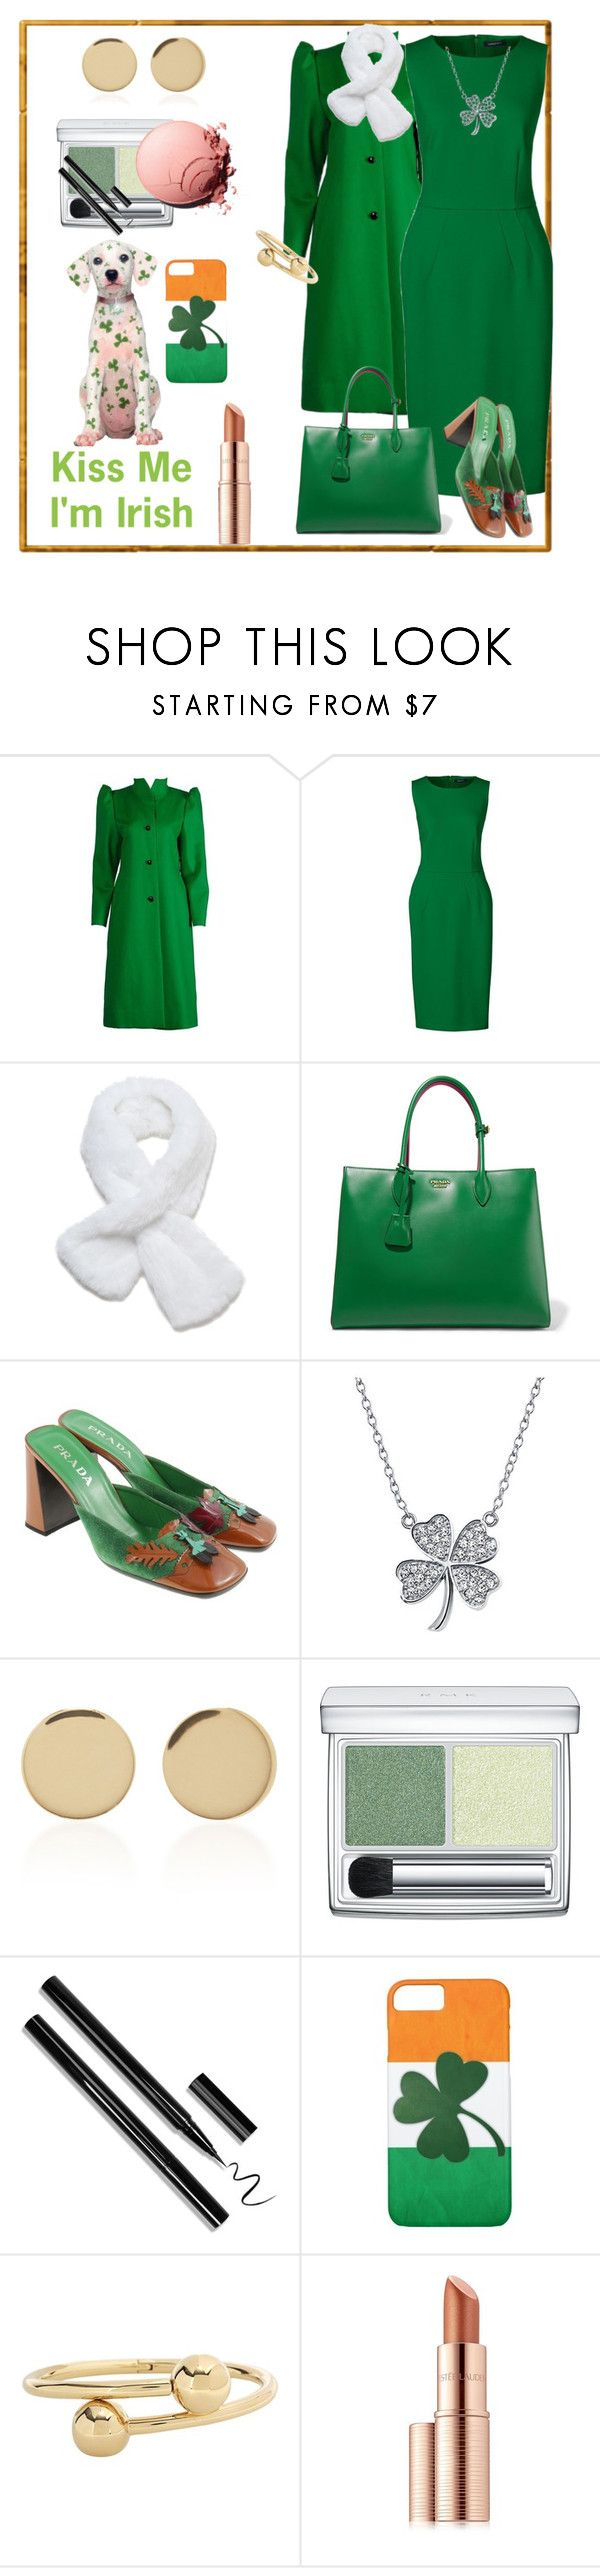 """Top o' the Morning To Ya 🇮🇪"" by klm62 ❤ liked on Polyvore featuring Lands' End, Prada, Bling Jewelry, Magdalena Frackowiak, RMK, J.W. Anderson, Estée Lauder and plus size dresses"